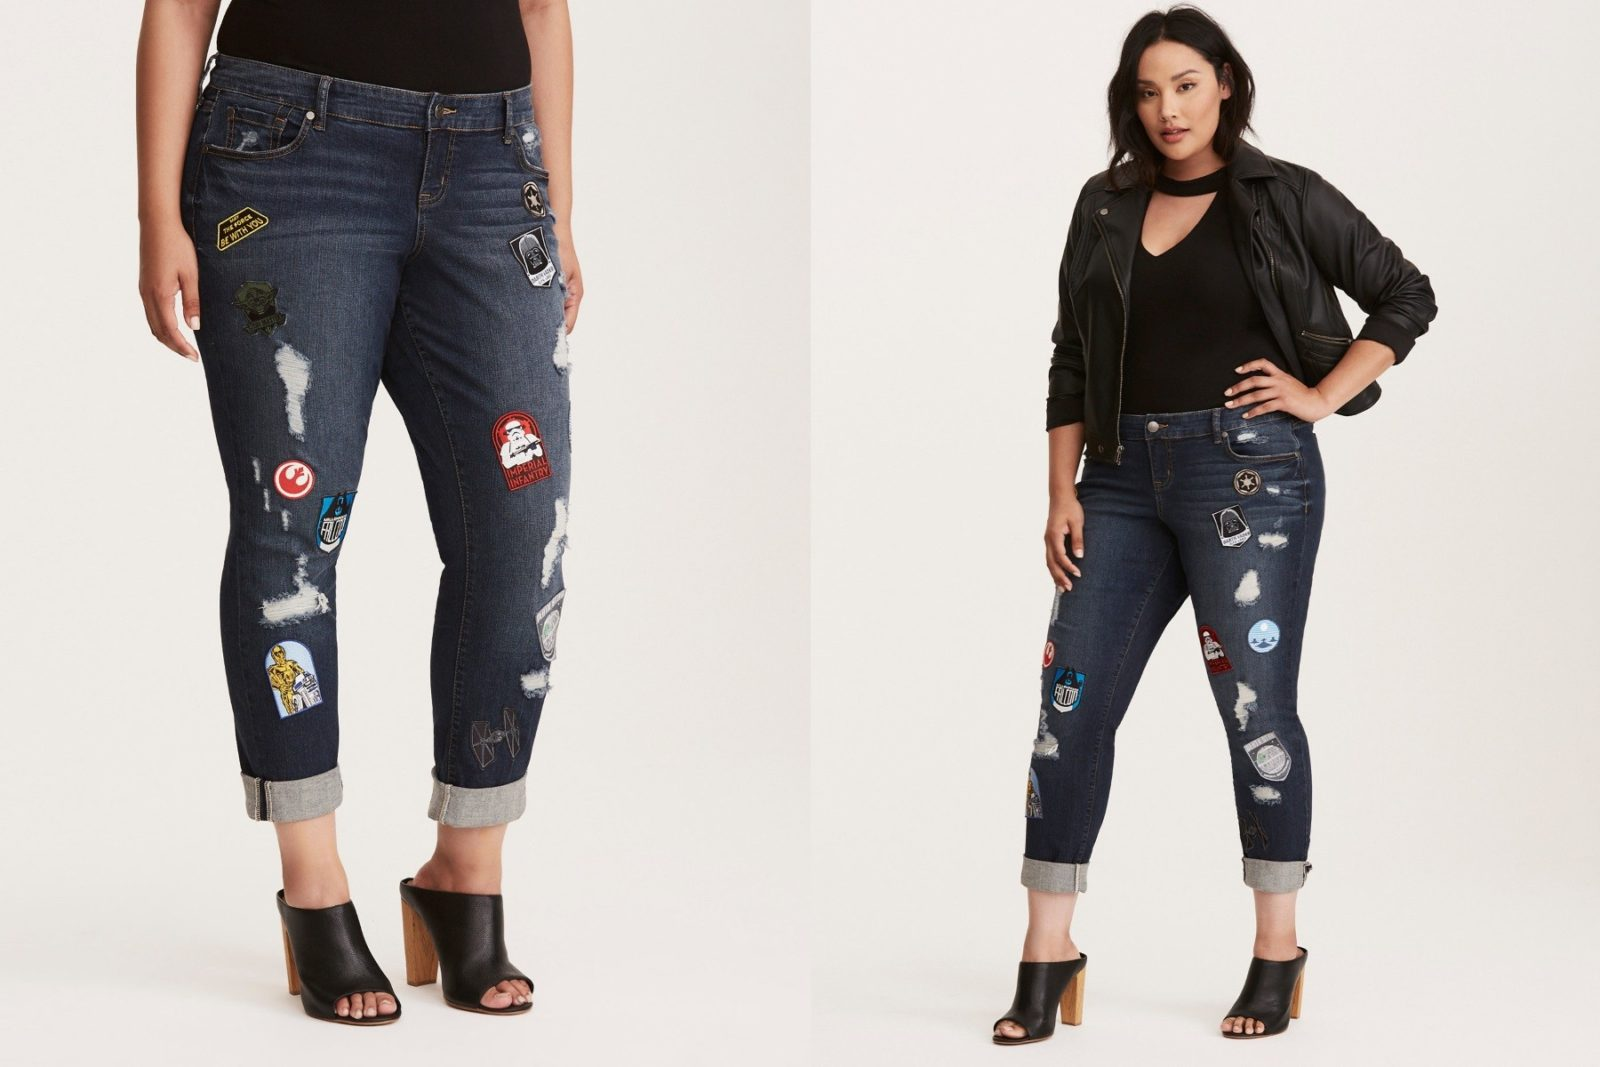 Women's Star Wars Patch Jeans at Torrid